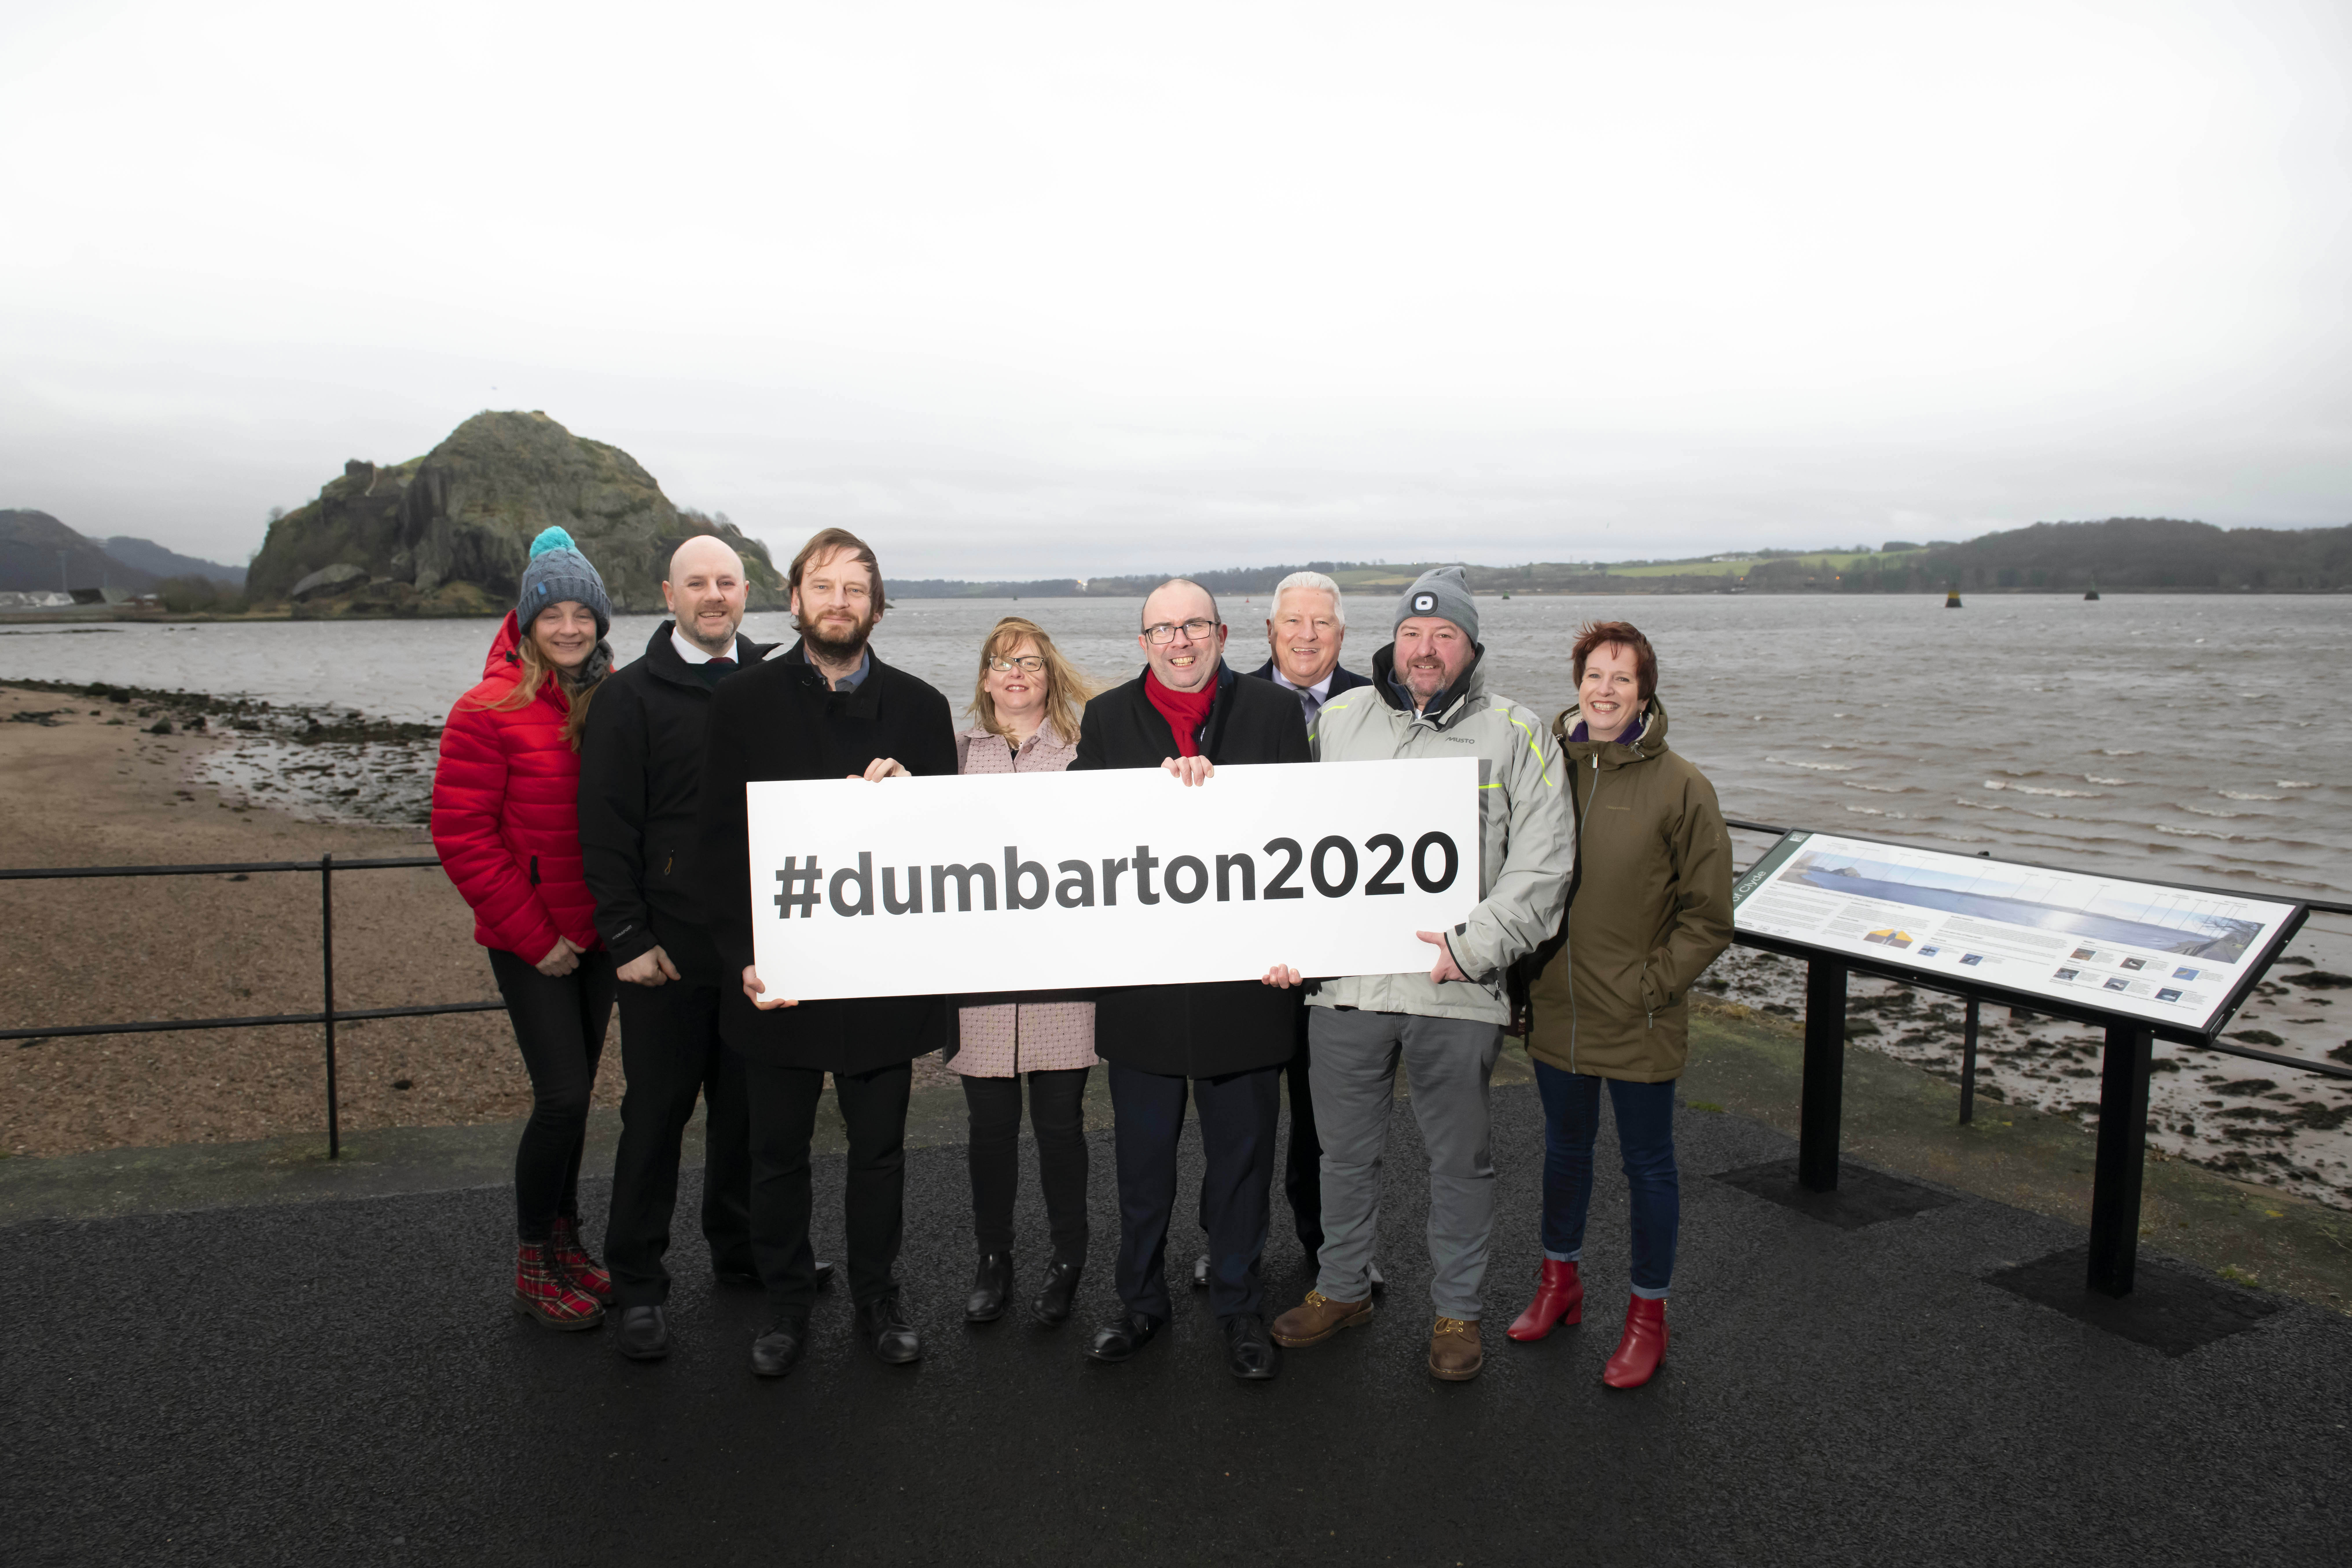 Standing at the shoreline to advertise Dumbarton Festival, holding a sign -  #dunbarton2020